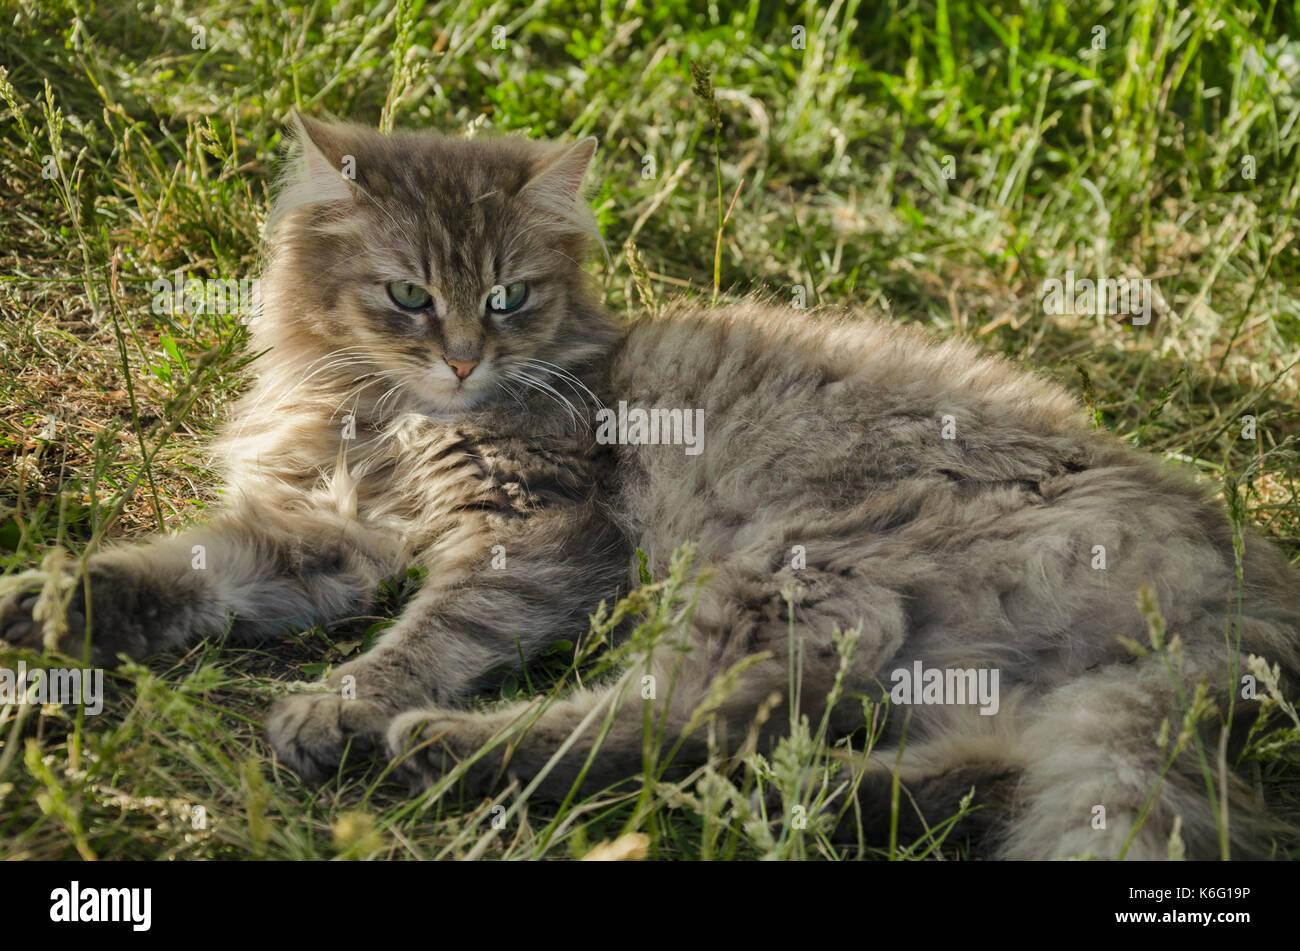 Beautiful Fluffy Gray Cat With Green Eyes Against A Background Of Stock Photo Alamy